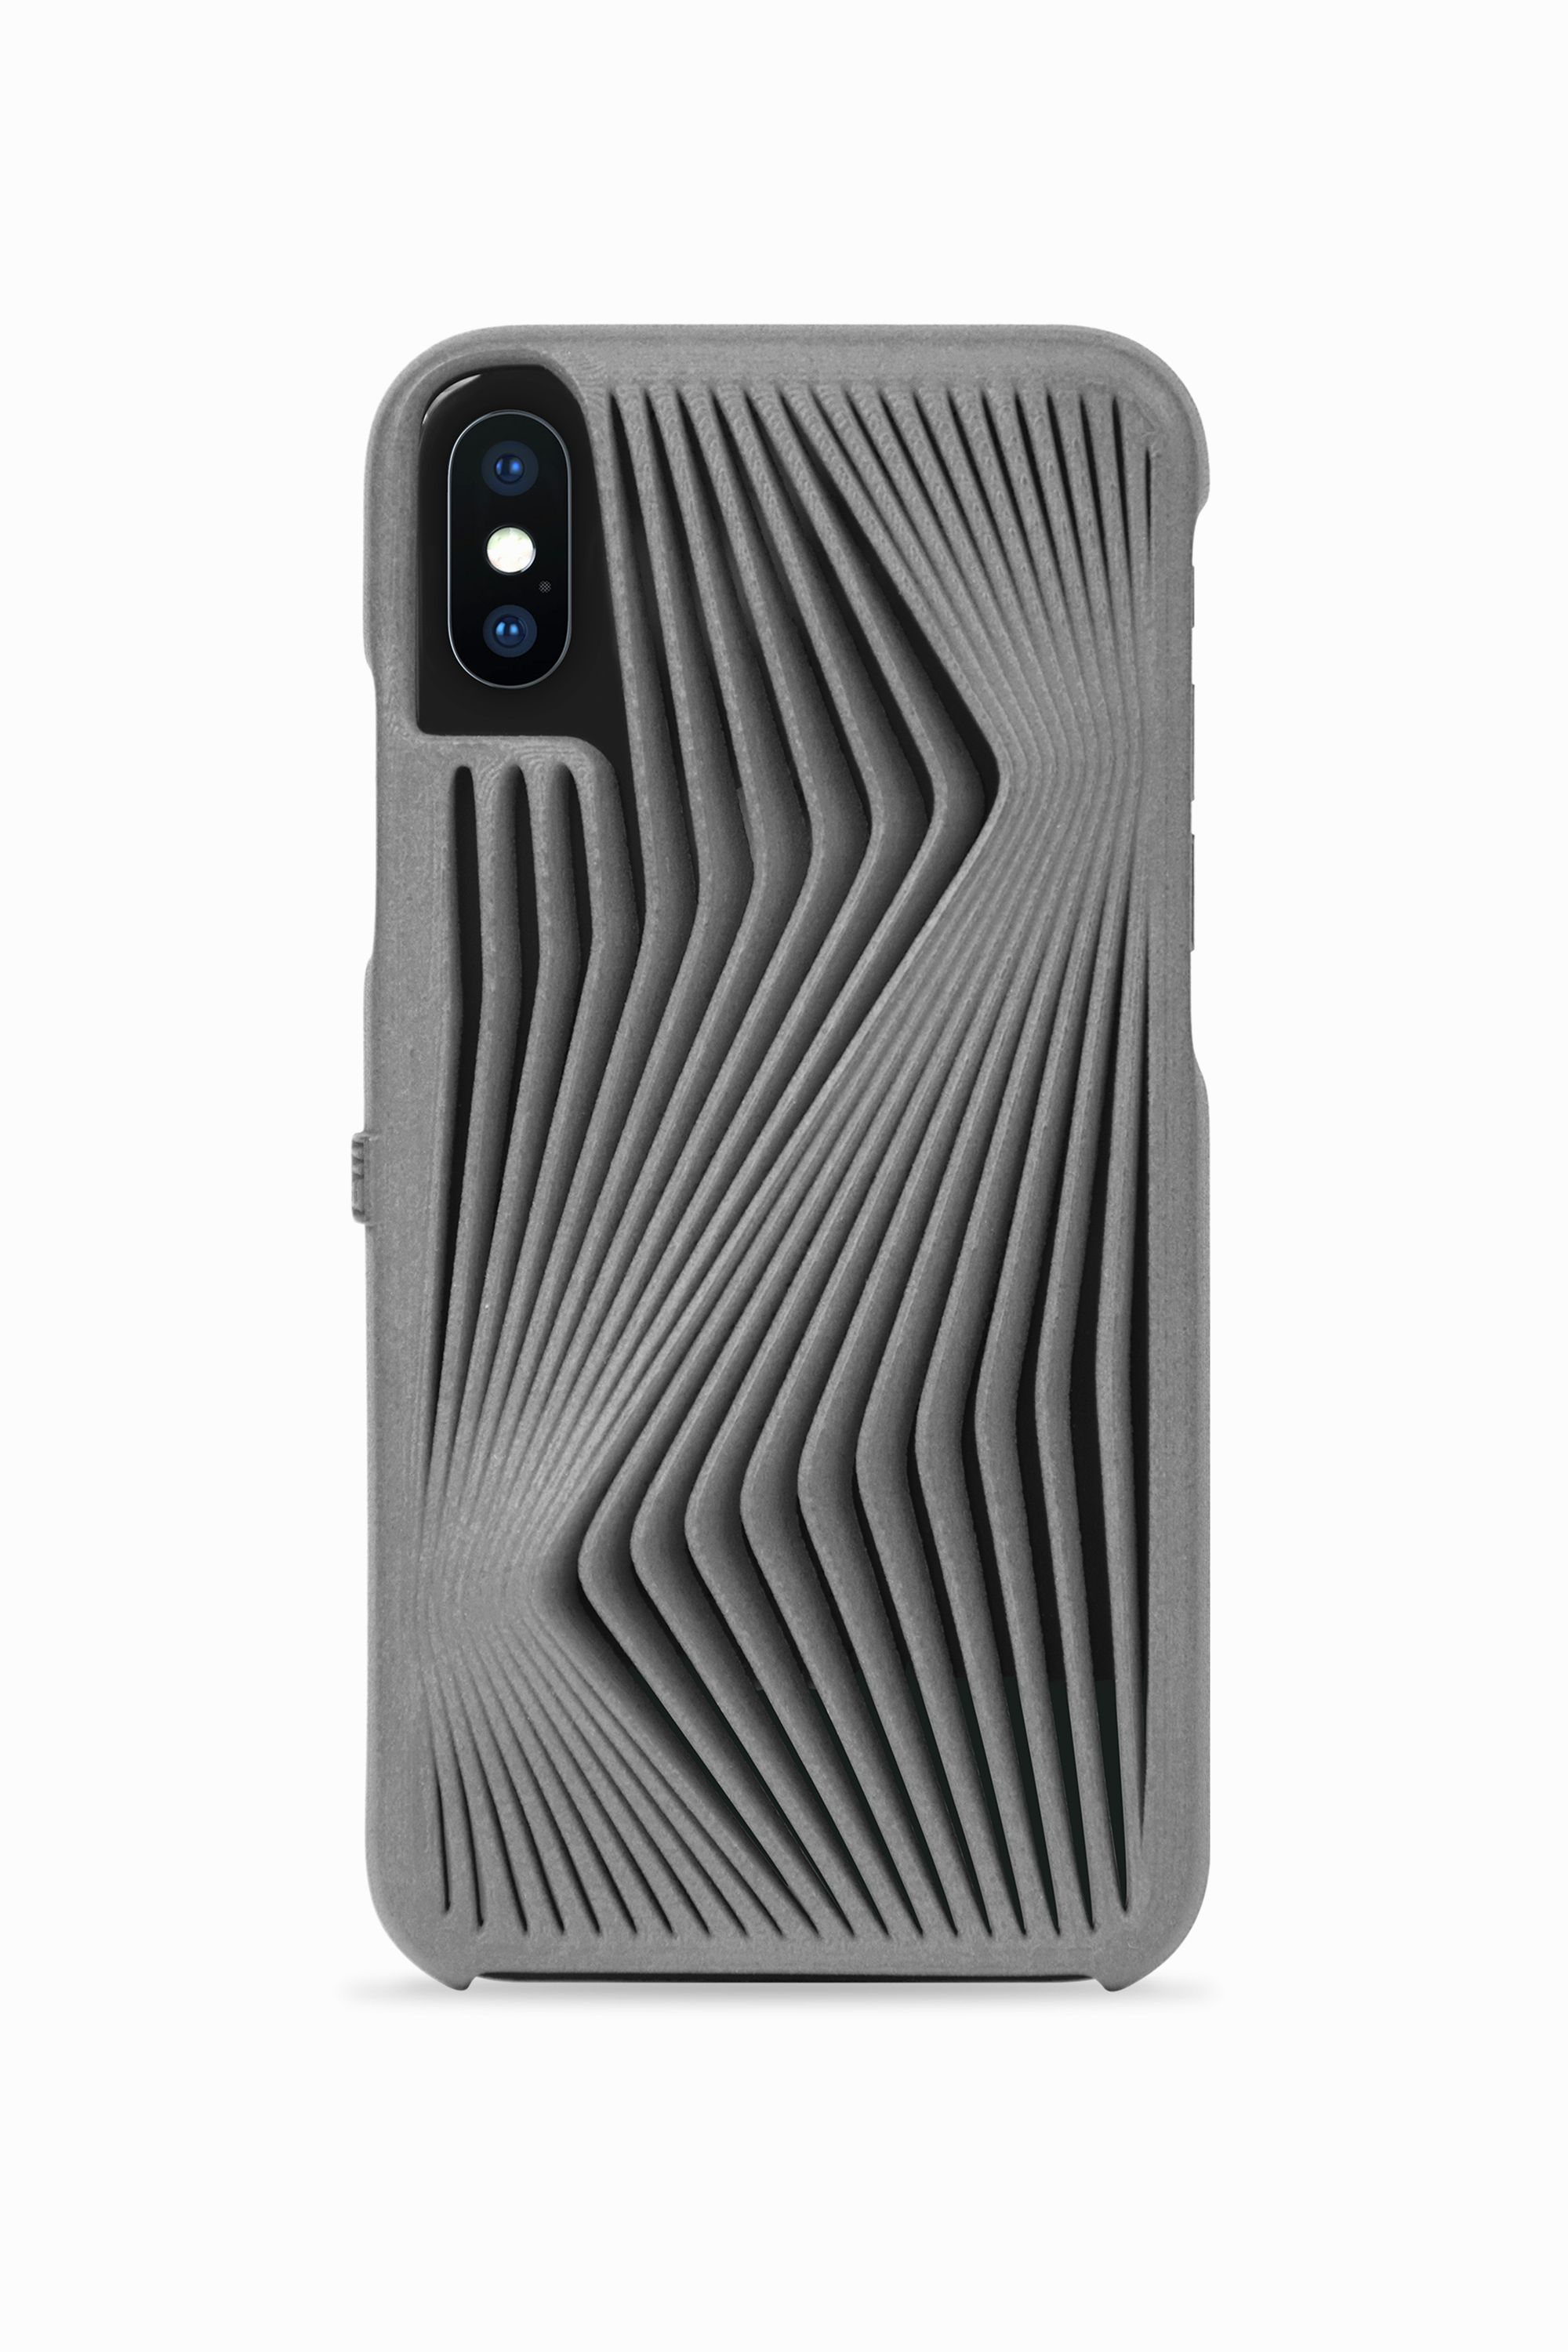 Herz 3D Printed Phone Case for iPhone X by Freshfiber